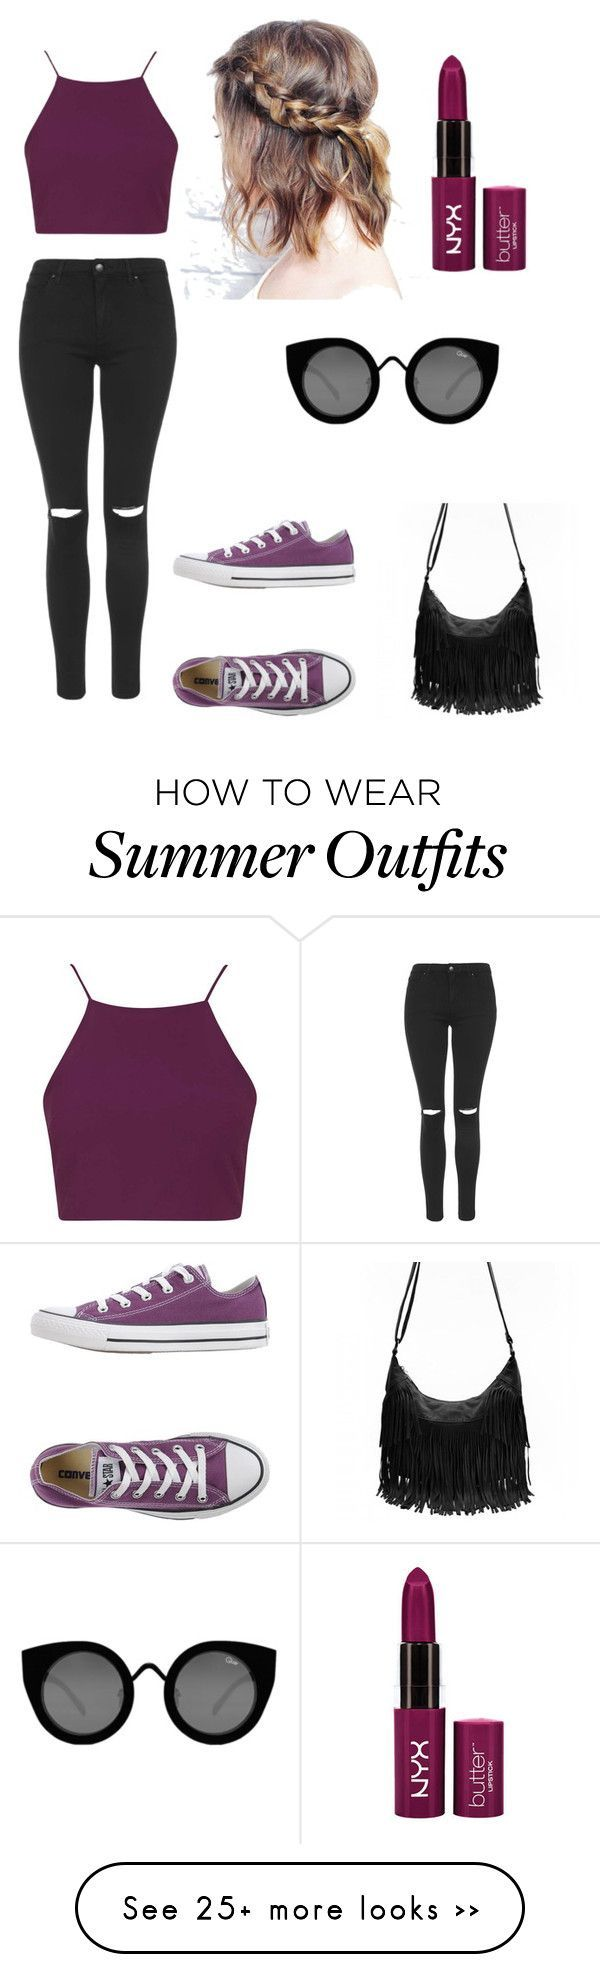 My First Polyvore Outfit By Marianzebani On Polyvore